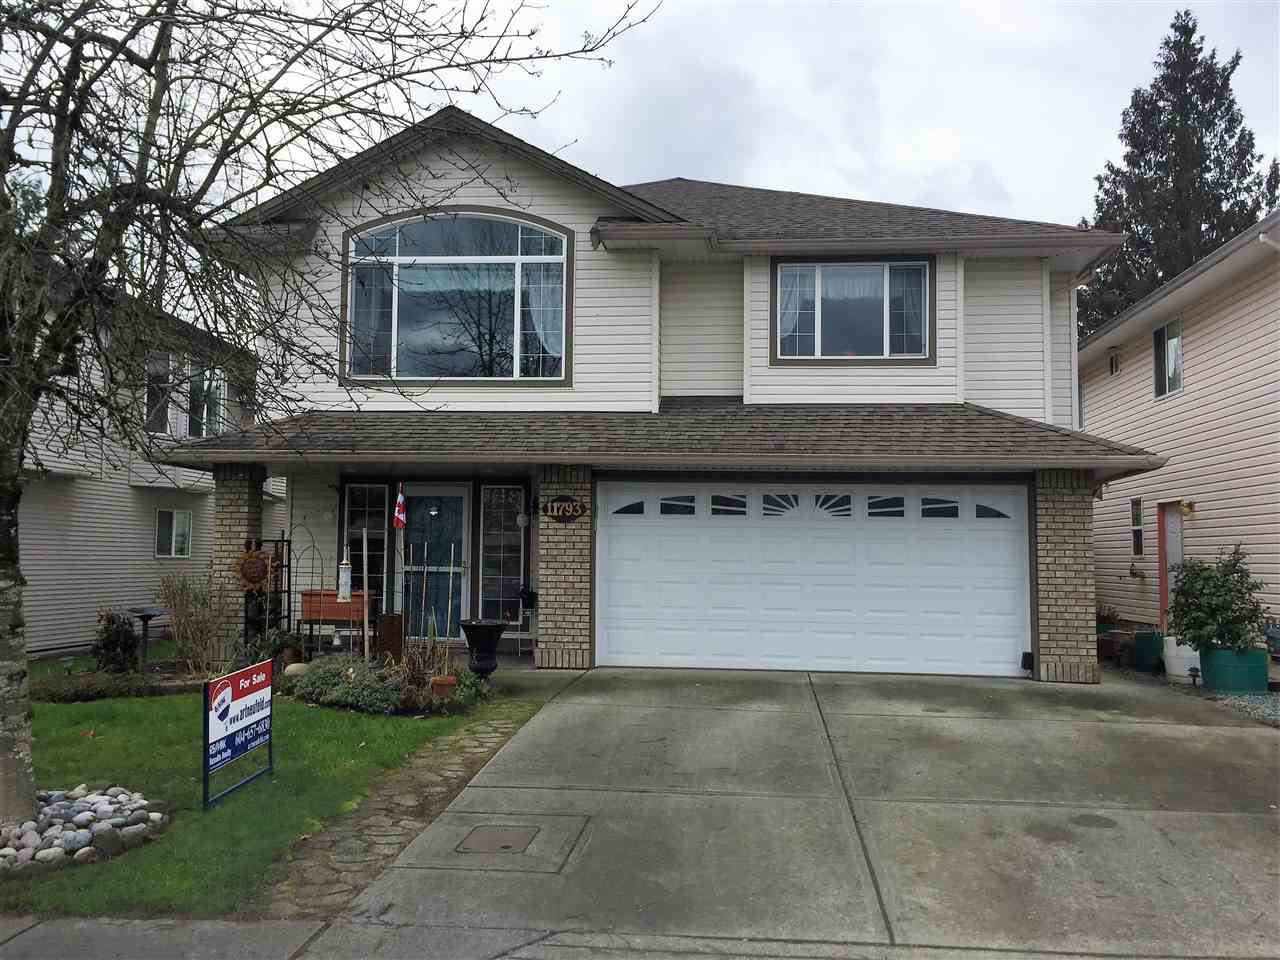 Main Photo: 11793 231ST Street in Maple Ridge: East Central House for sale : MLS®# R2235862